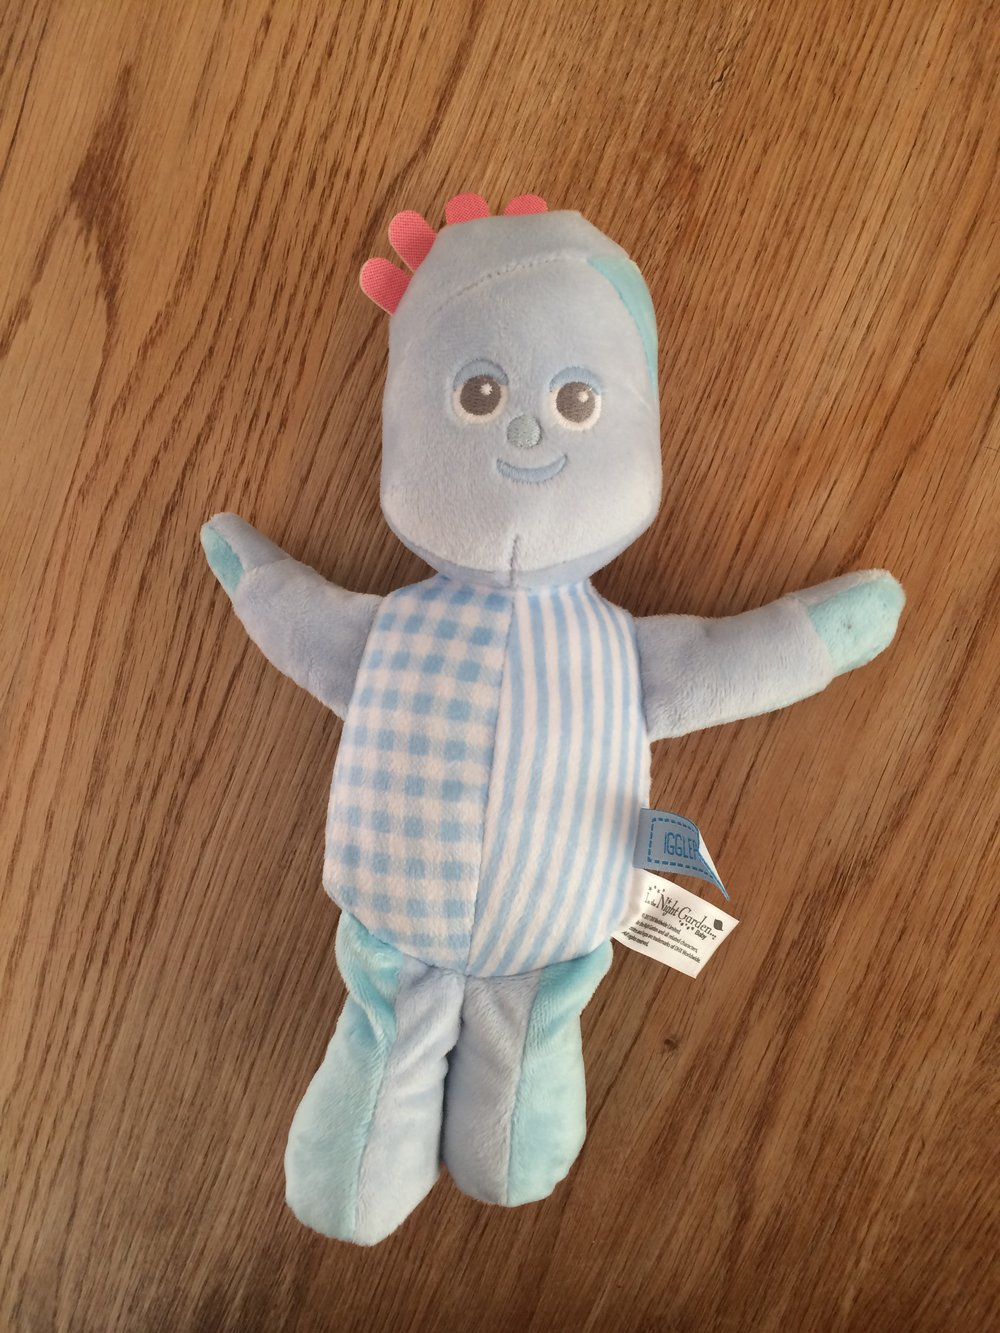 We got Iggle Piggle and he's really well put together (plus he's Bellas favourite)